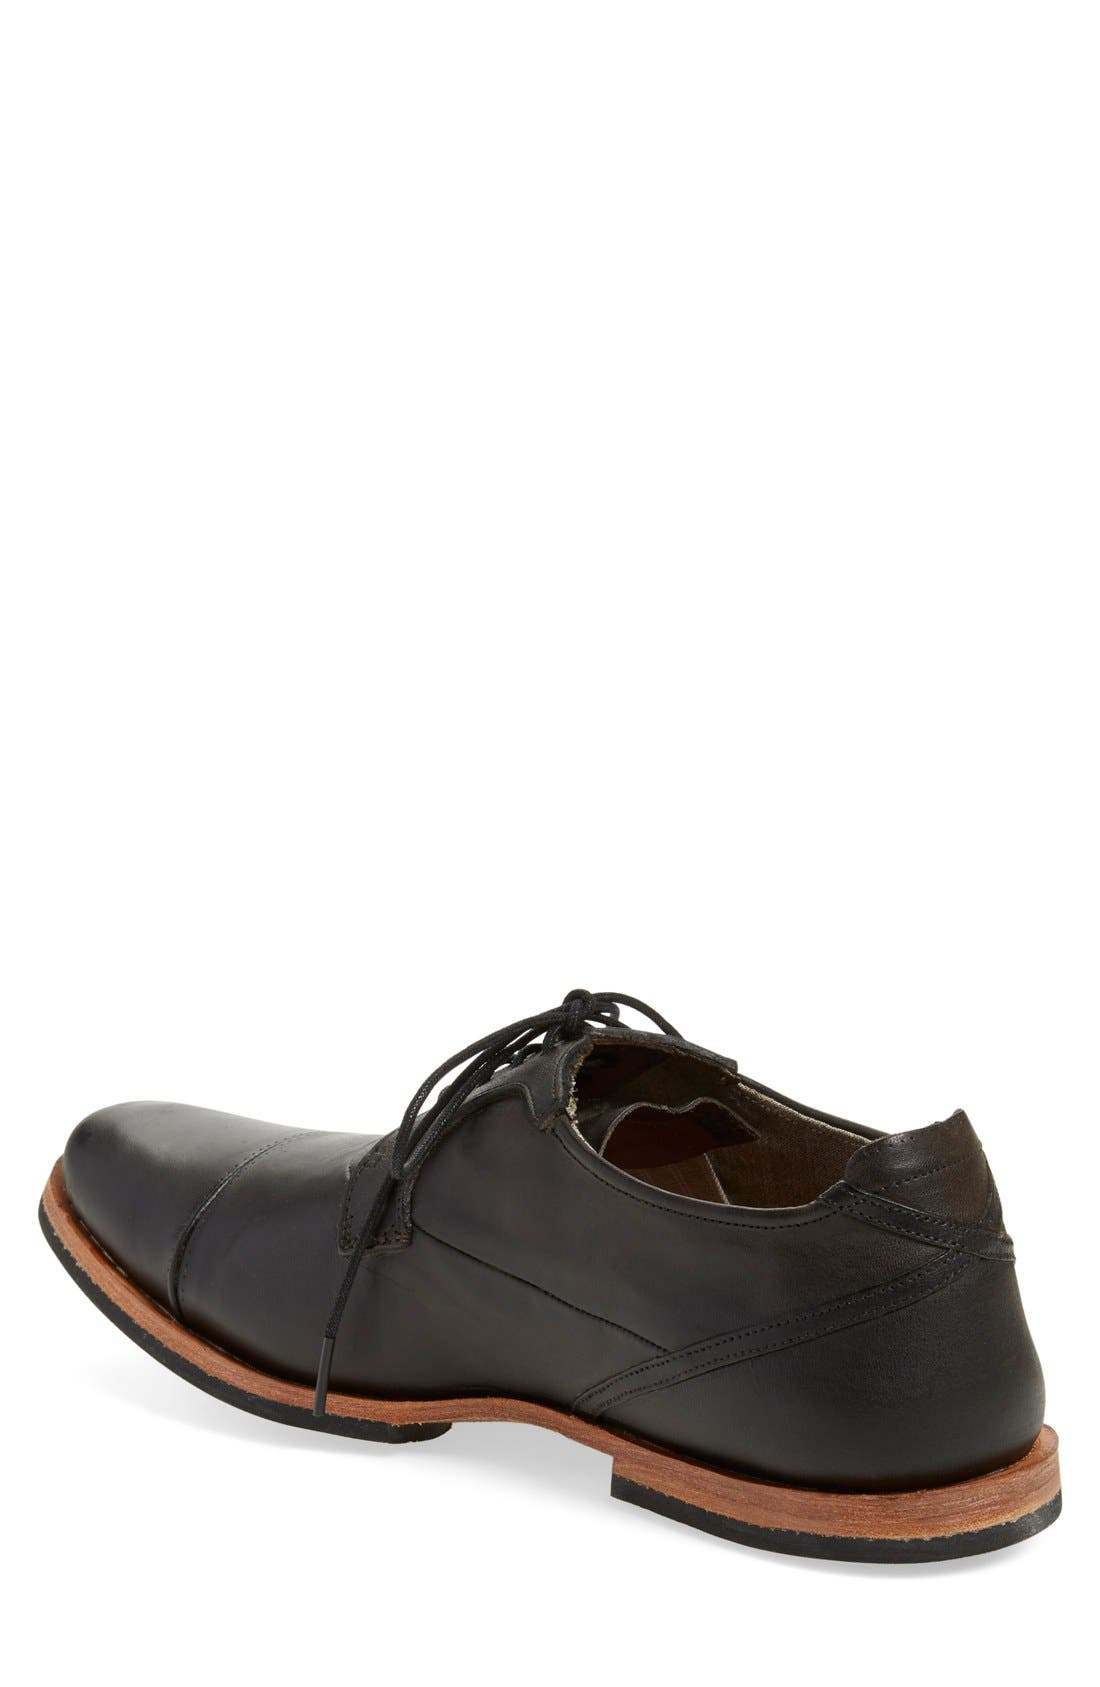 'Wodehouse Lost History' Cap Toe Oxford,                             Alternate thumbnail 2, color,                             Burnished Black Leather